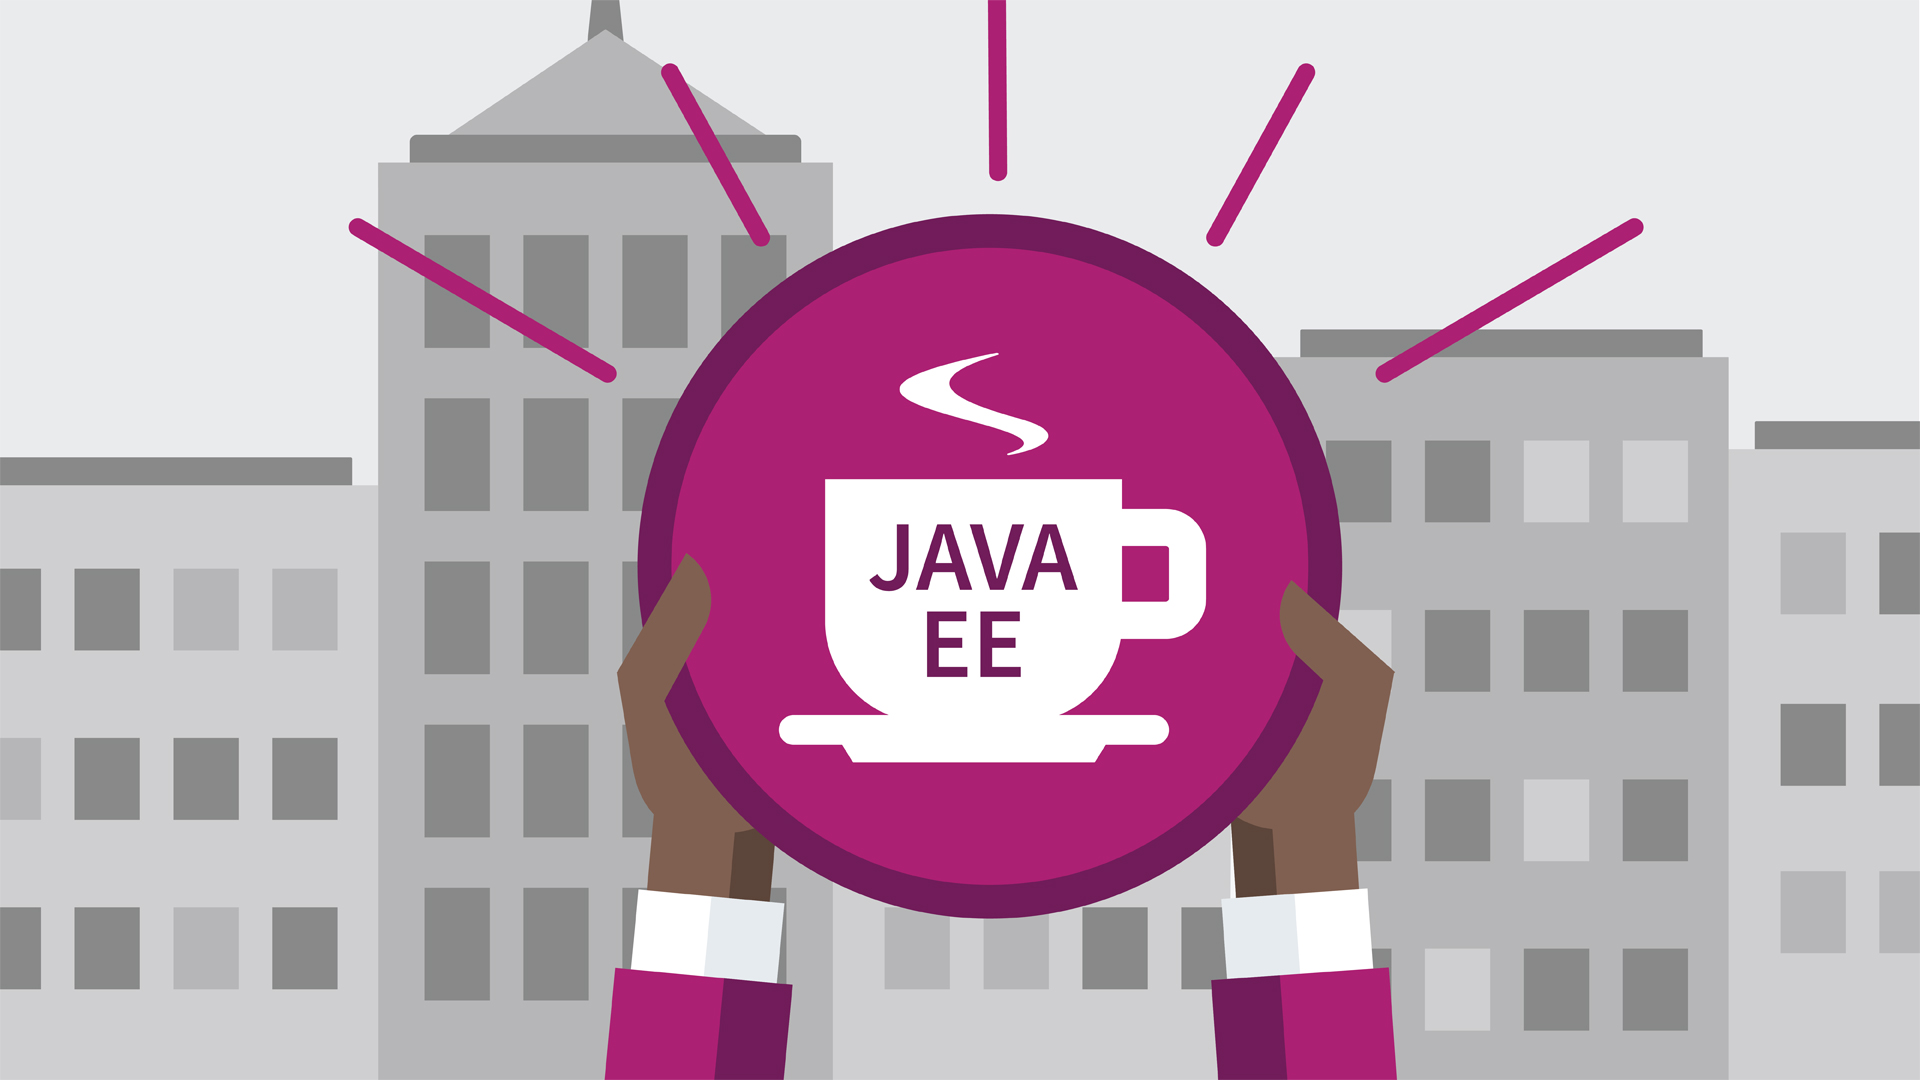 For desk java all-in-one dummies pdf reference